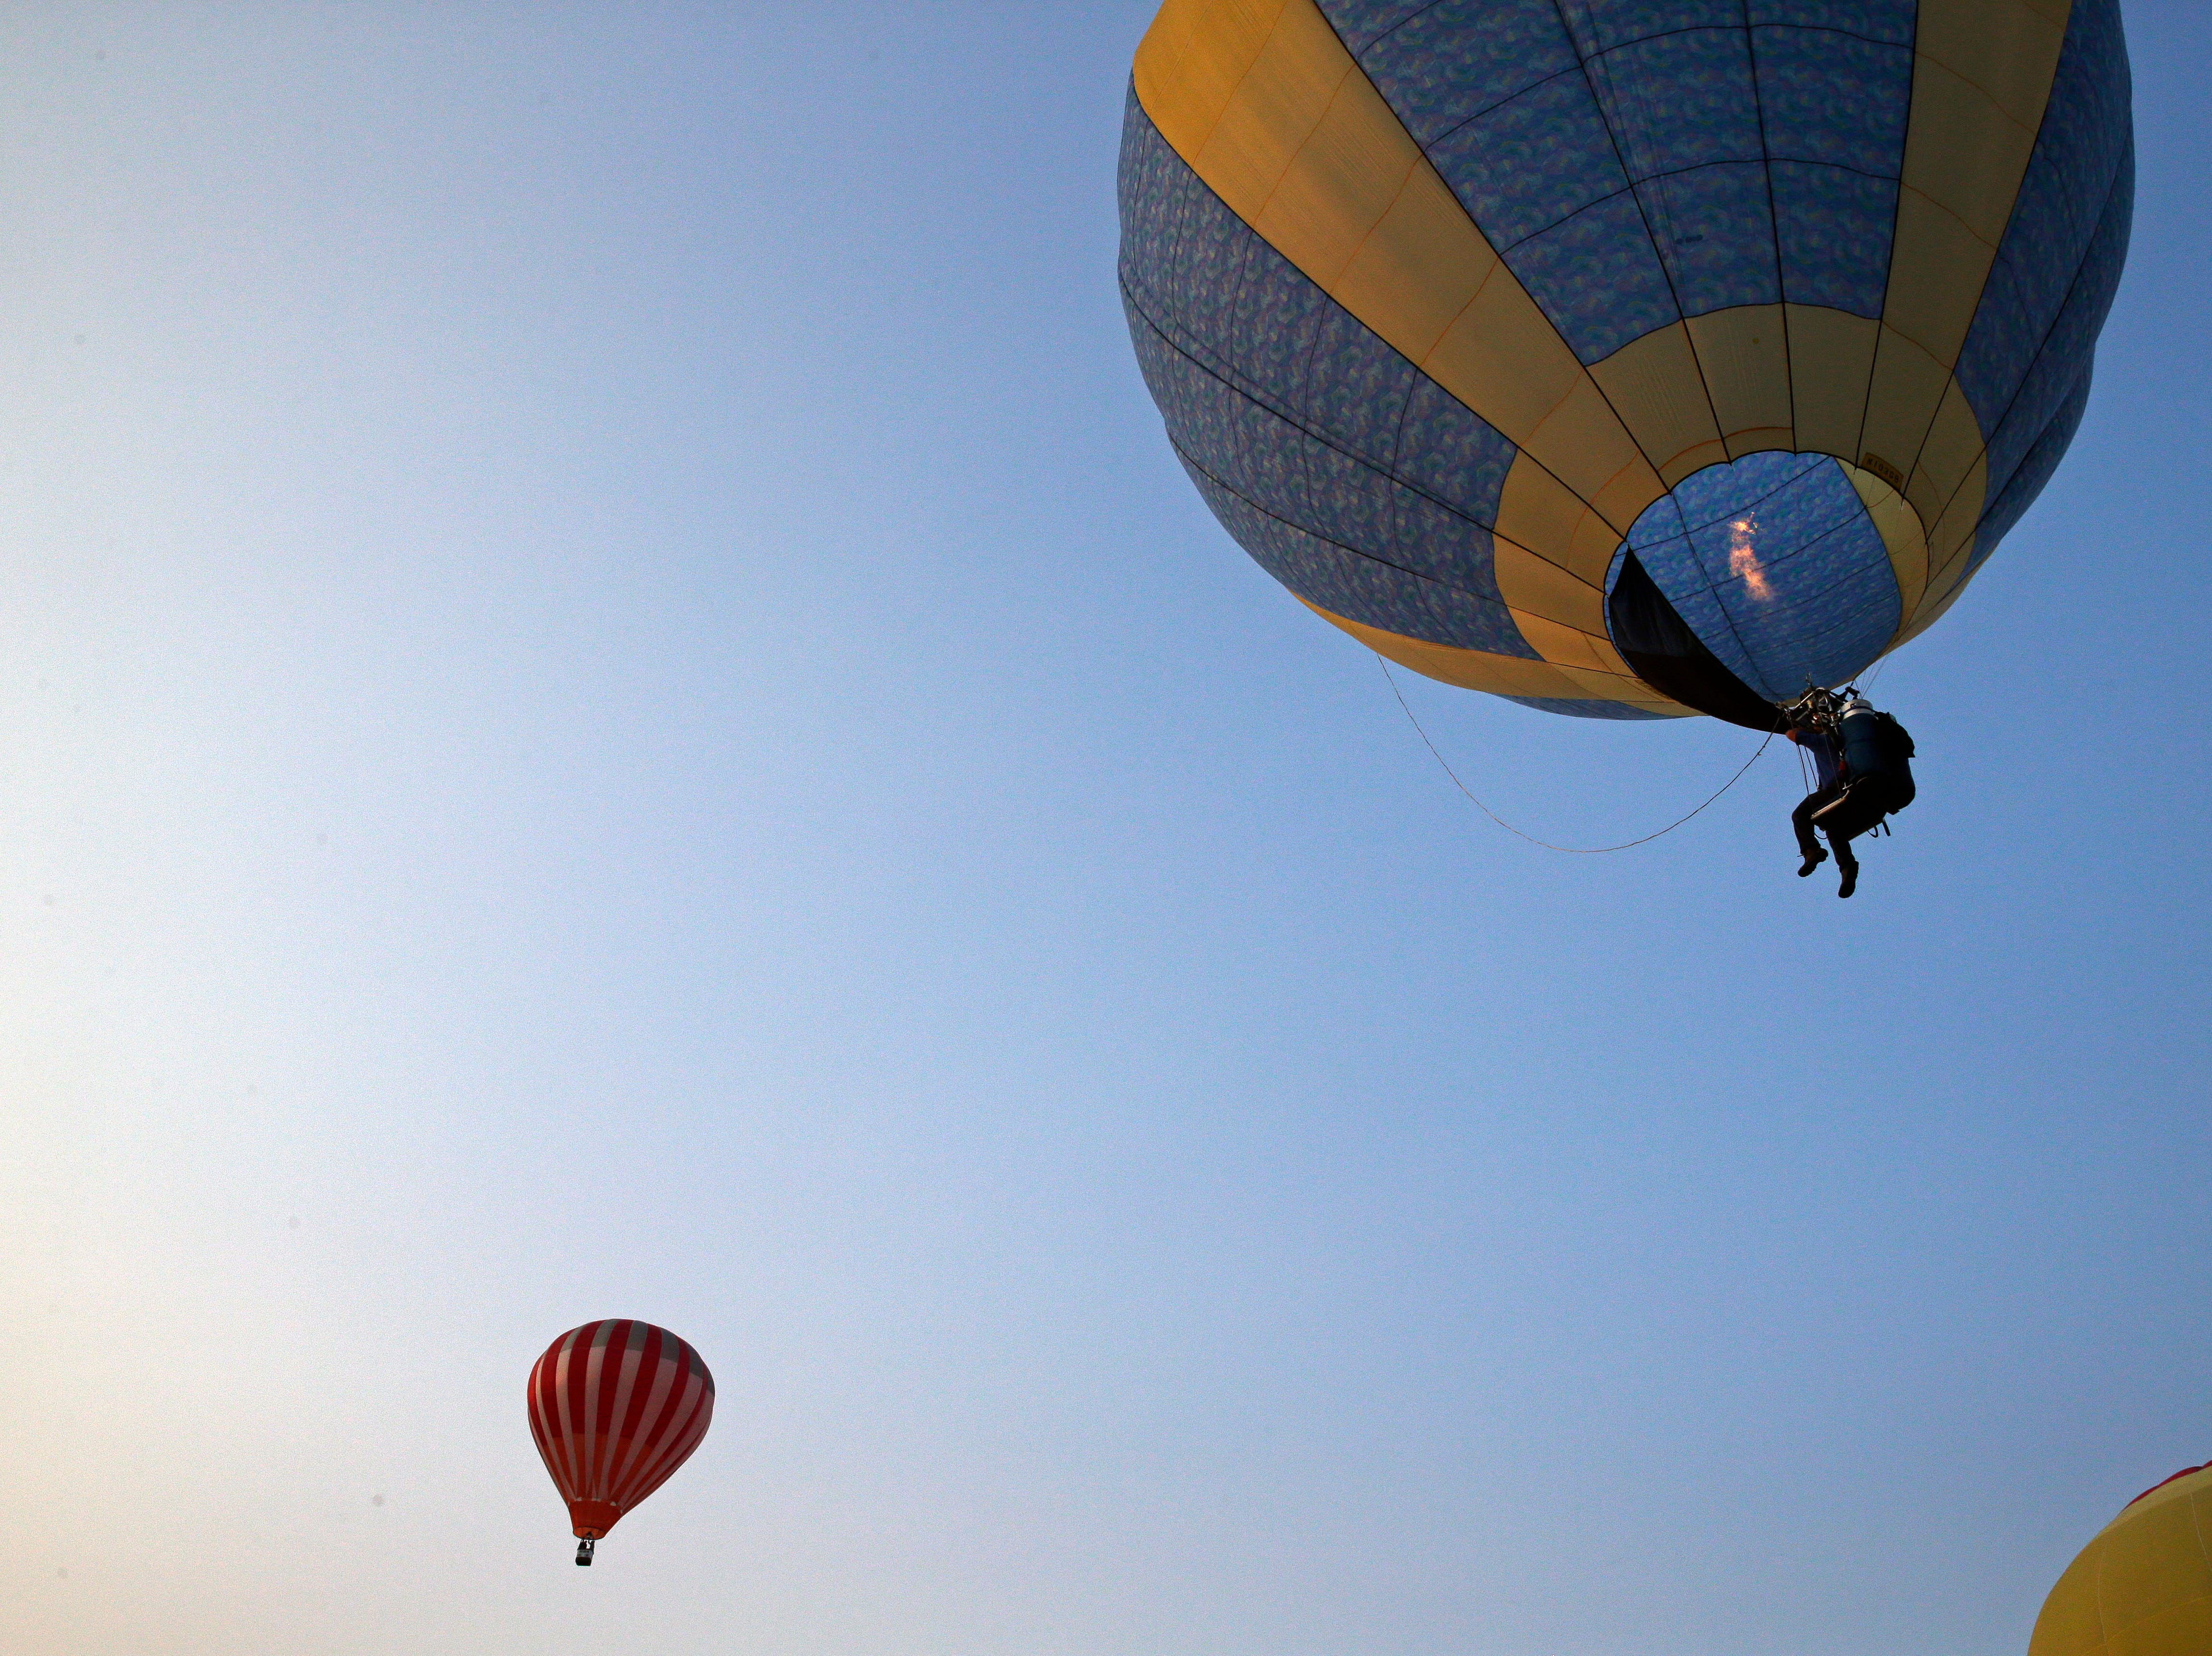 Dave Koenig of Menasha sits in a chair rather than a basket as he takes part in a hot air balloon ascension during the 30th annual Burger Fest Saturday, August 11, 2018, in Seymour, Wis.